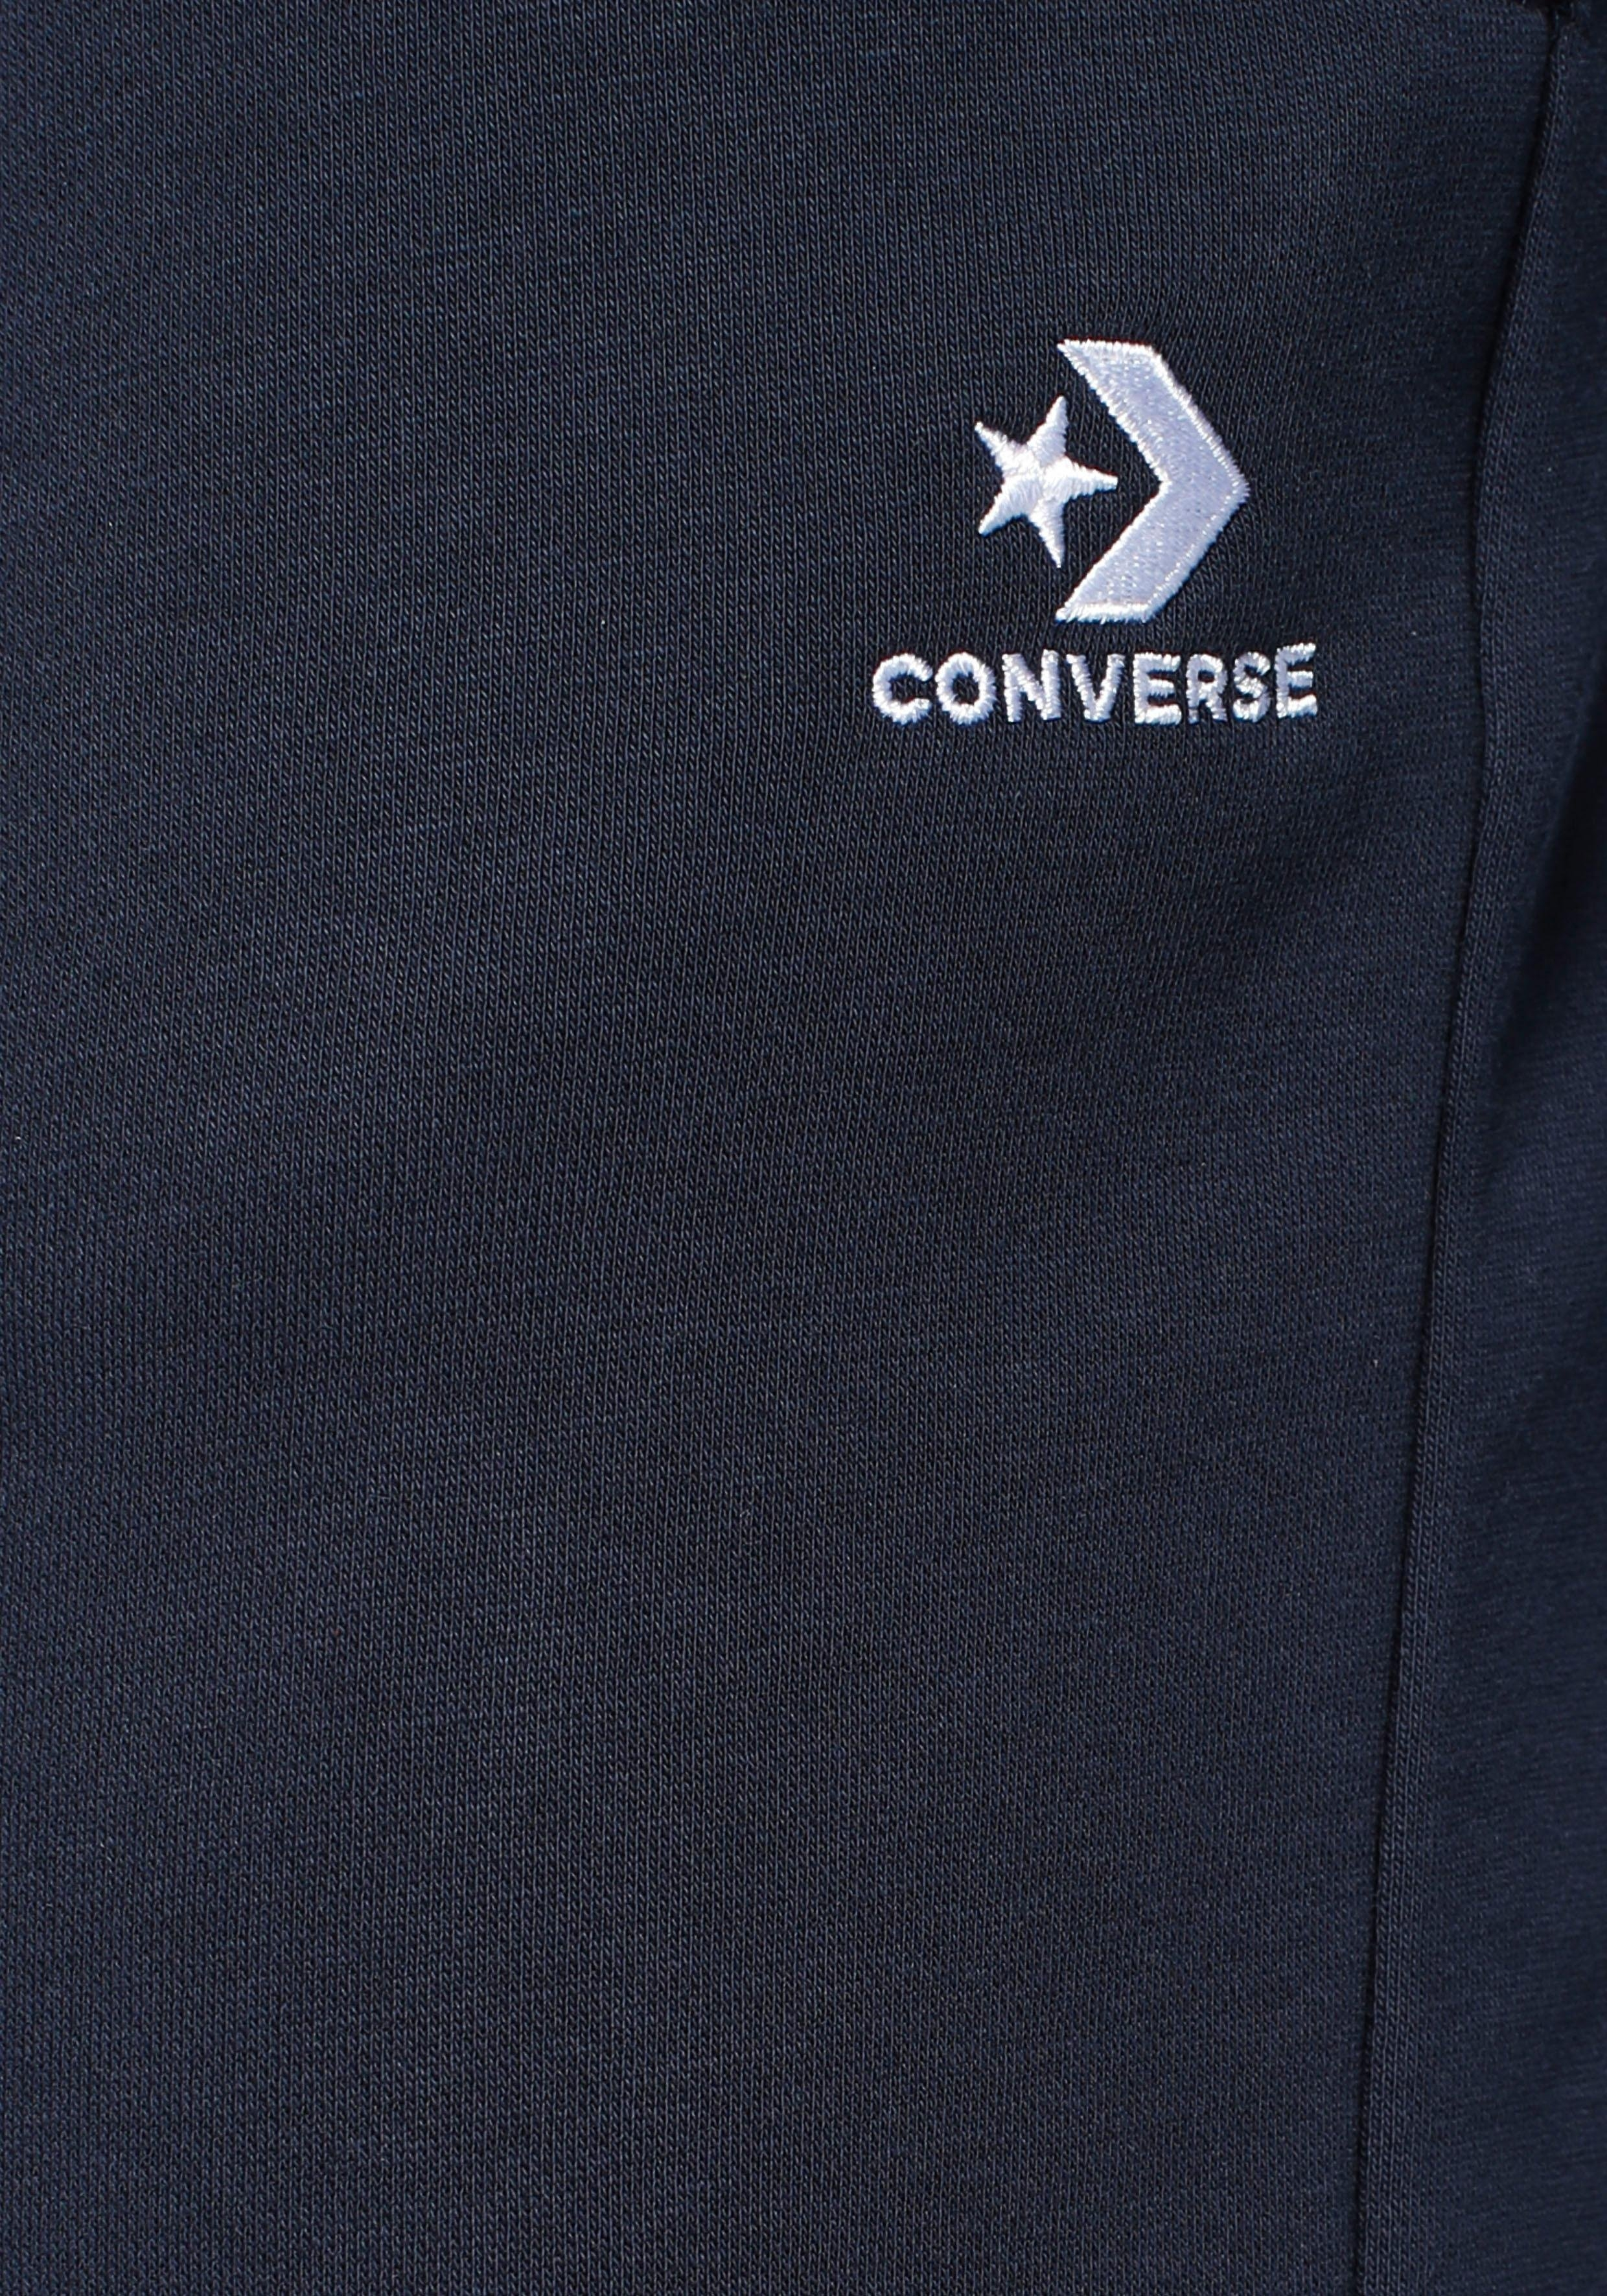 Converse sweatshort »MENS EMBROIDERED STAR CHEVRON SHORTS« - verschillende betaalmethodes